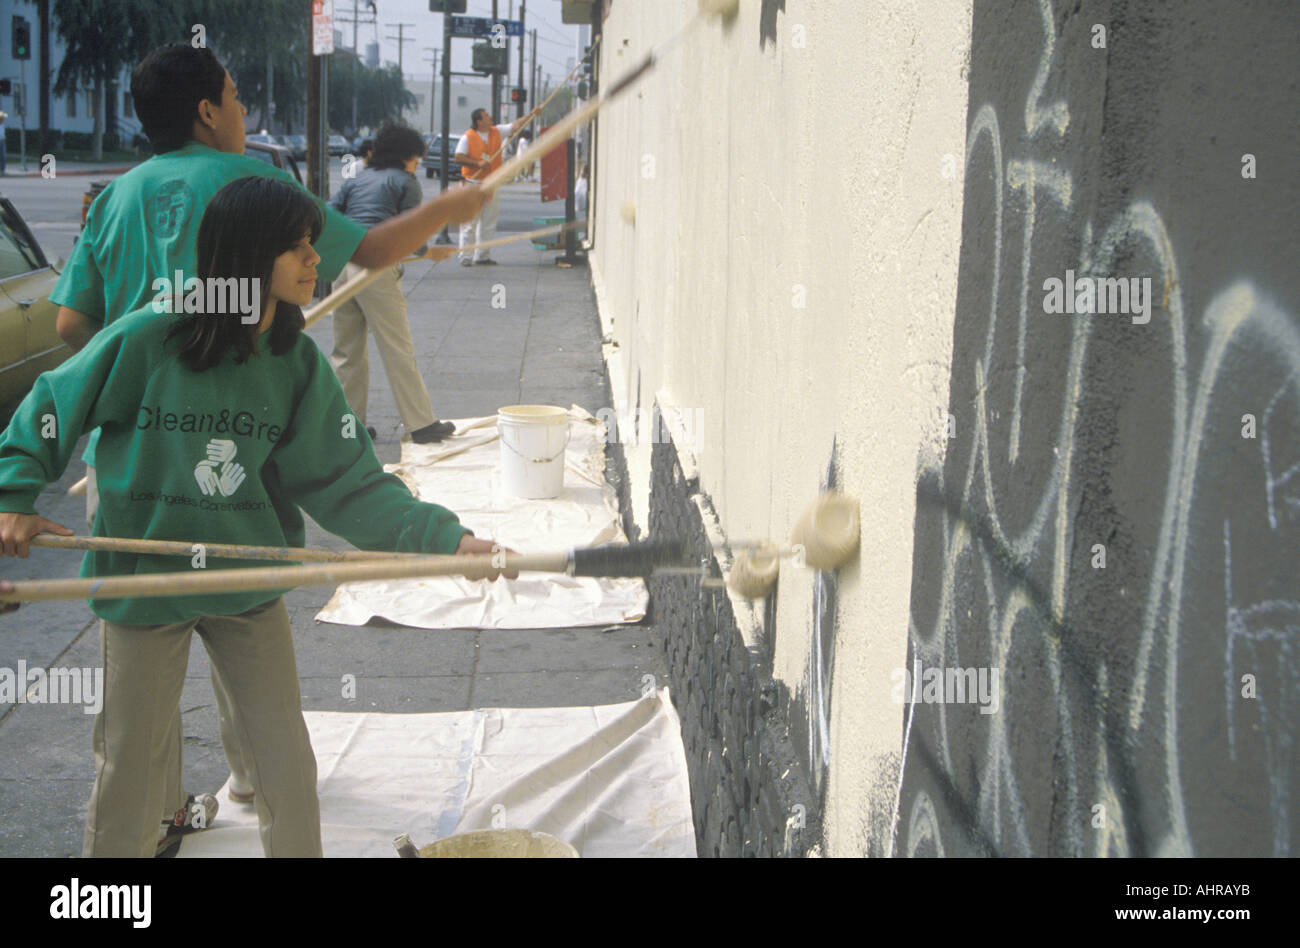 Several community members participate in covering graffiti for Clean Green Day an urban cleanup pro B302ject in East Los - Stock Image